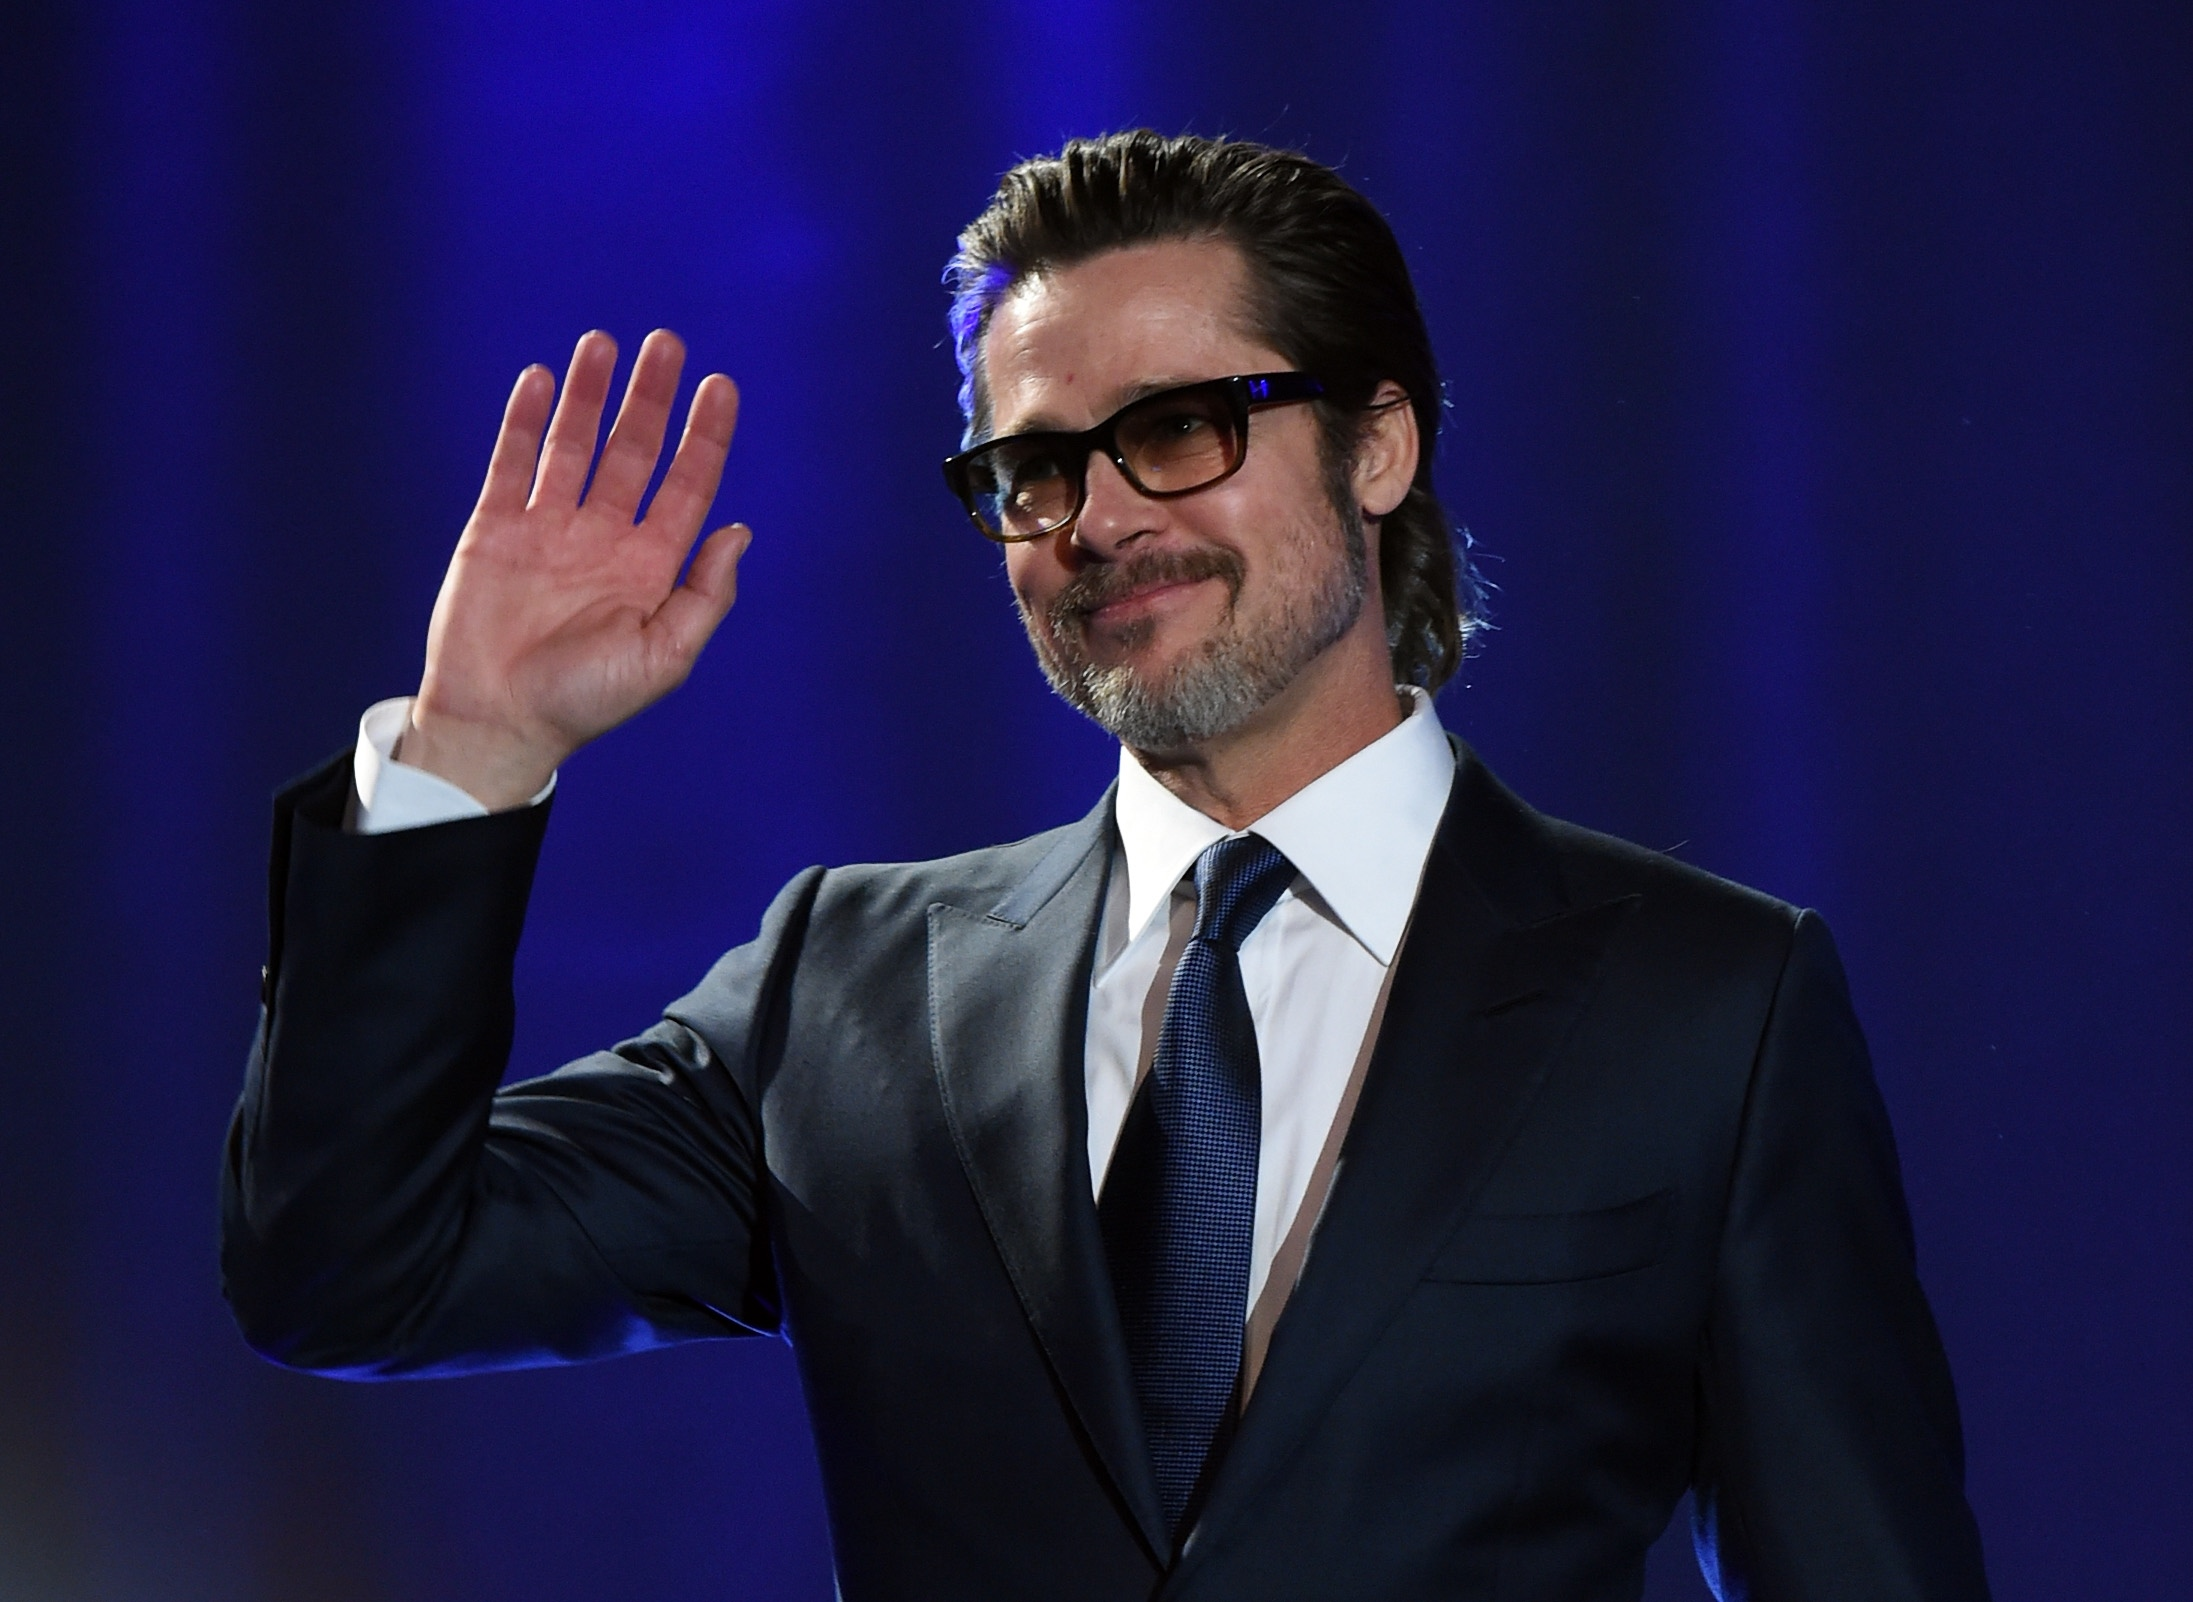 PALM SPRINGS, CA - JANUARY 03: Actor Brad Pitt speaks onstage during the 26th Annual Palm Springs International Film Festival Awards Gala at Palm Springs Convention Center on January 3, 2015 in Palm Springs, California. (Photo by Jason Merritt/Getty Images for PSIFF)